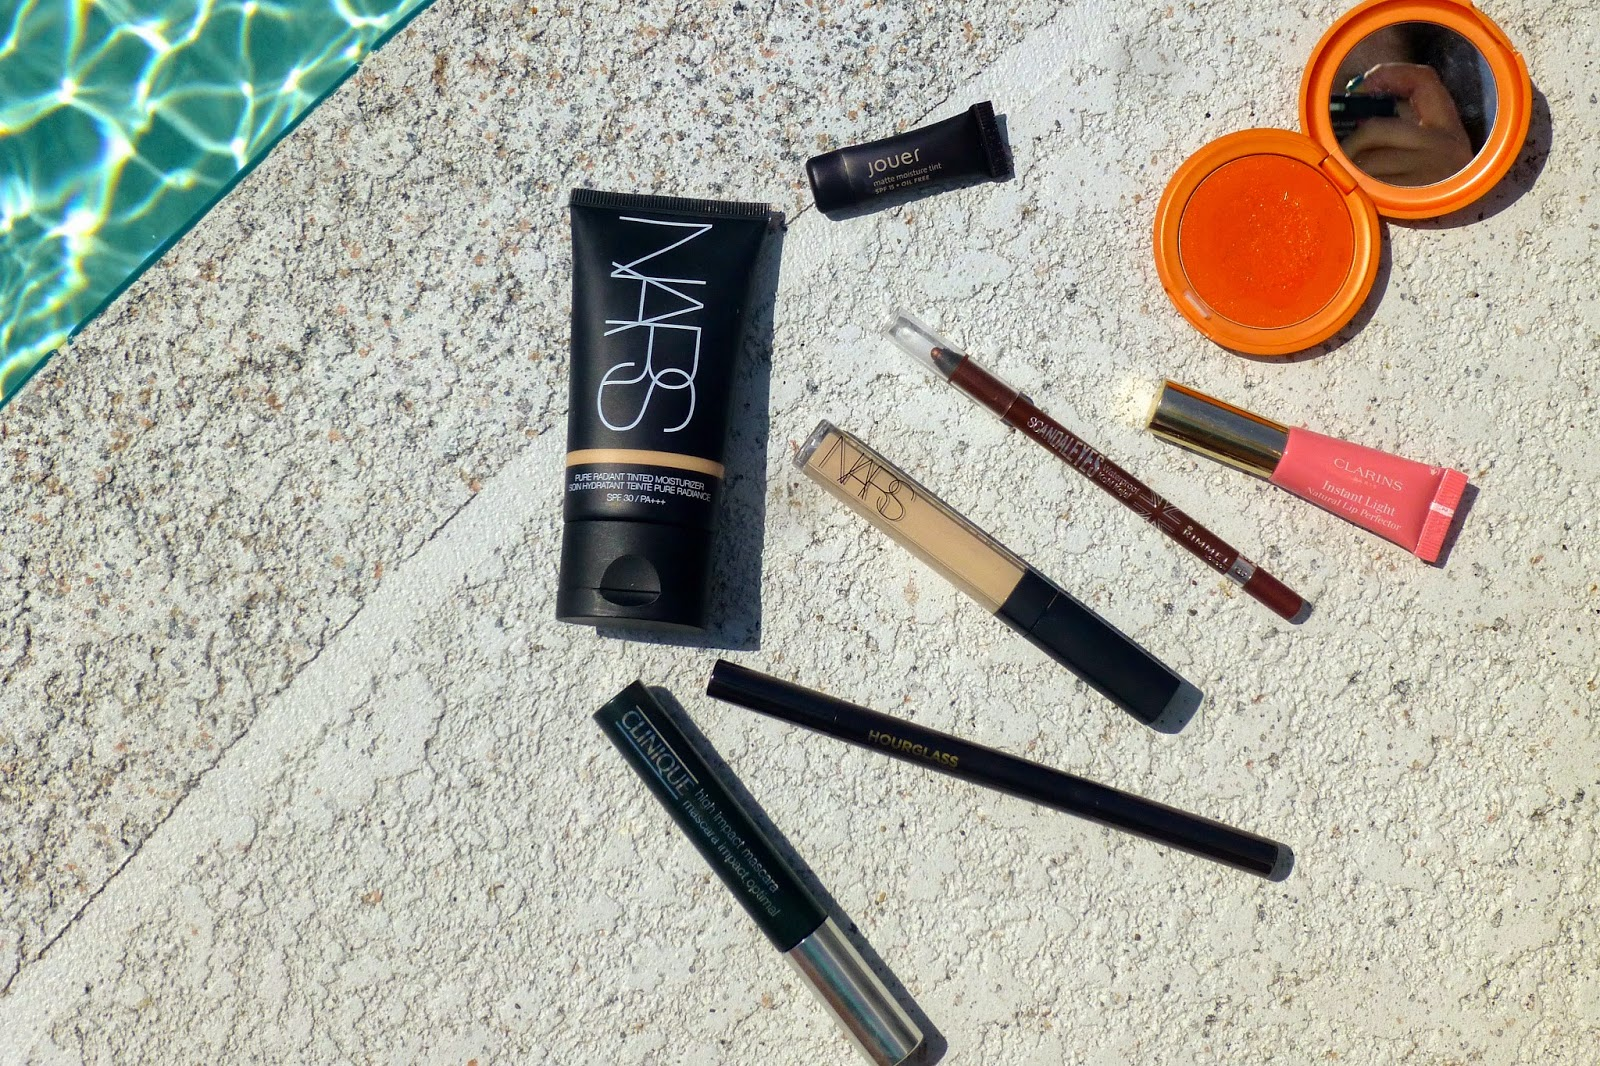 Nars Tinted Moisturiser Product Review